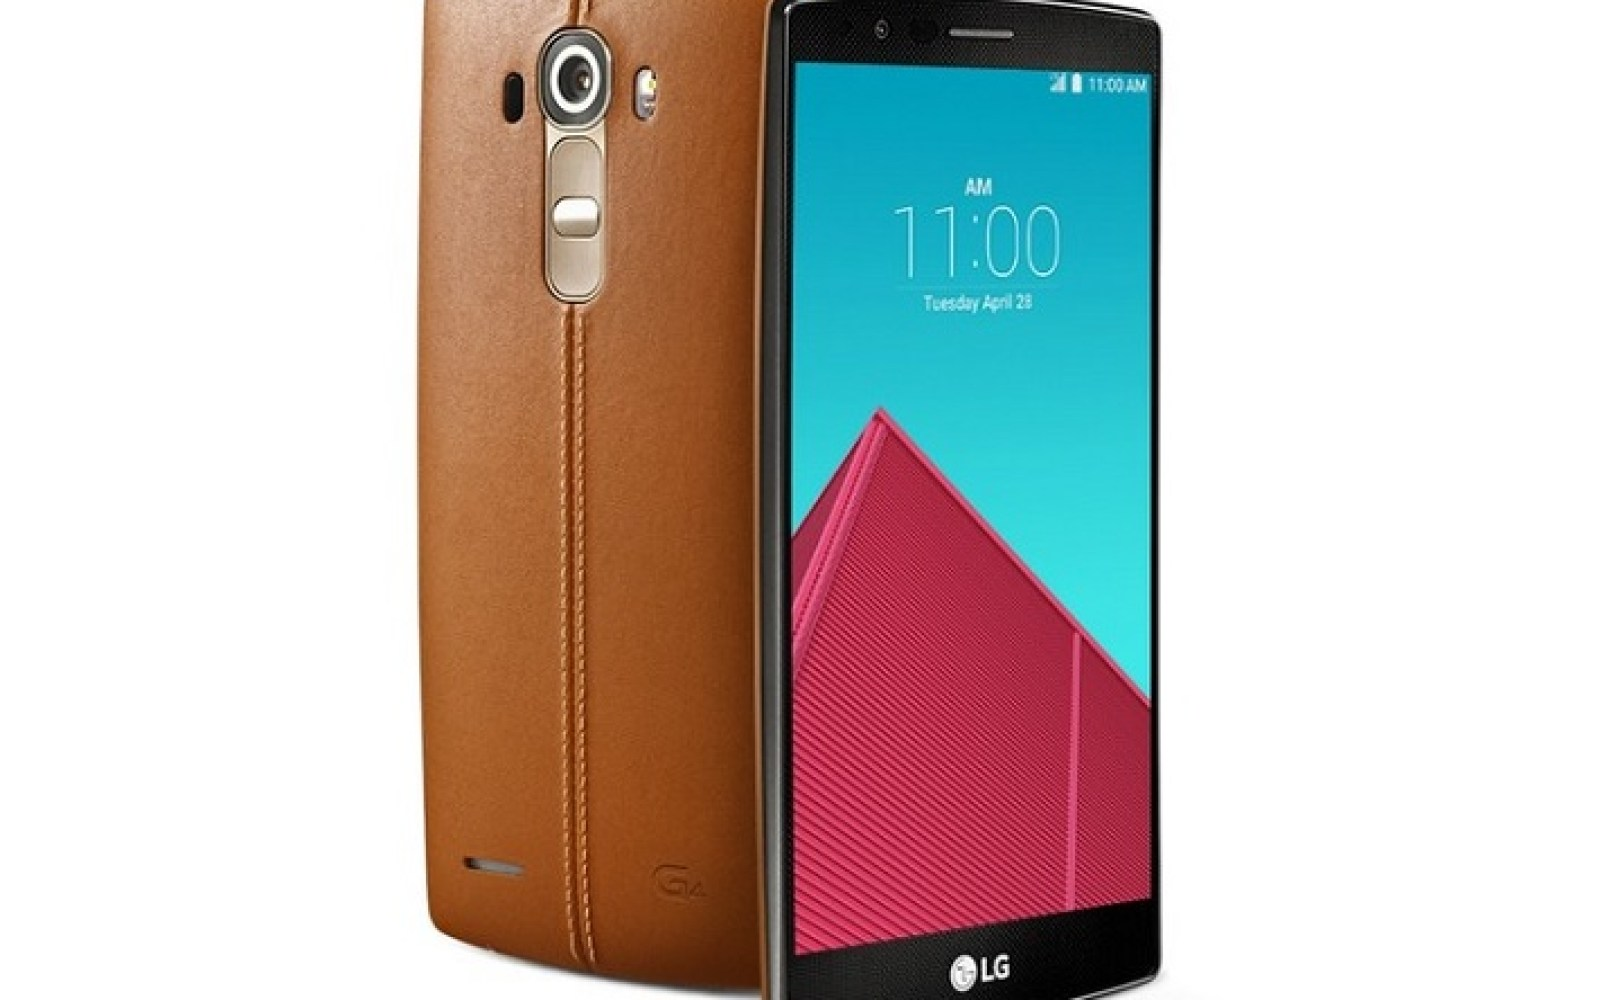 LG G4 arrives on Sprint June 5 with free 32GB memory card, spare battery & charging cradle